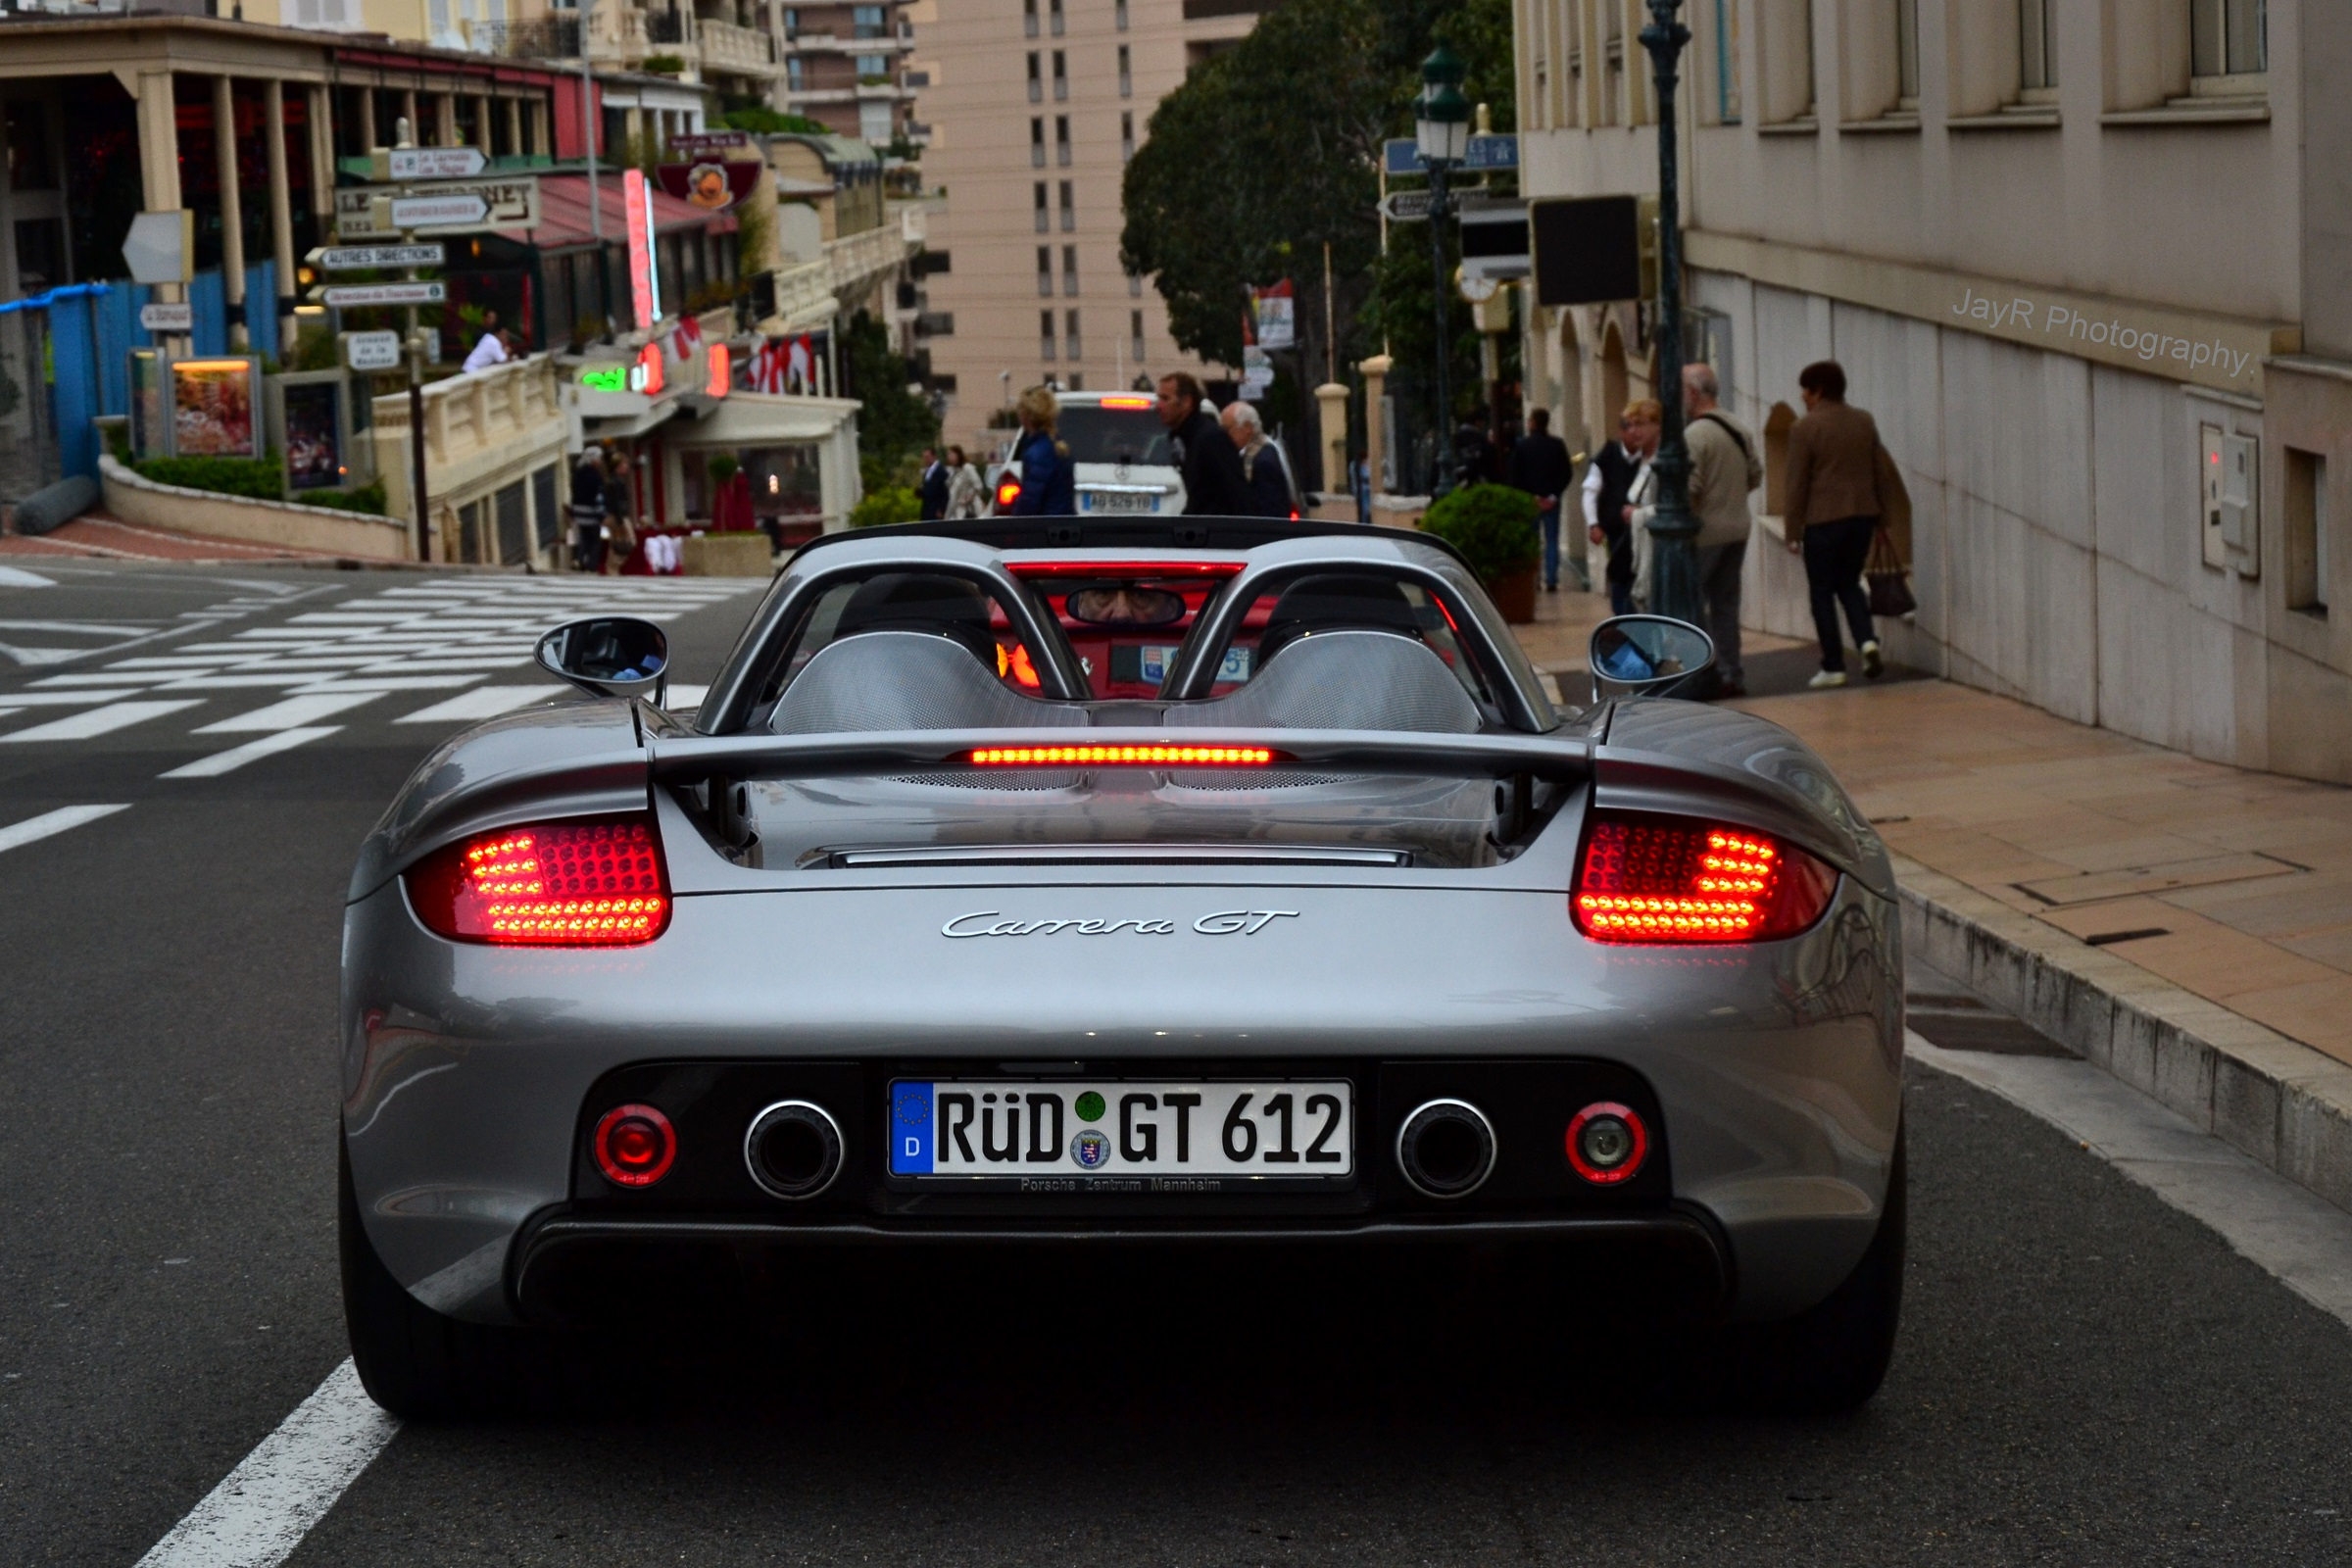 The Carrera GT Picture Thread! - Page 275 - Teamspeed.com